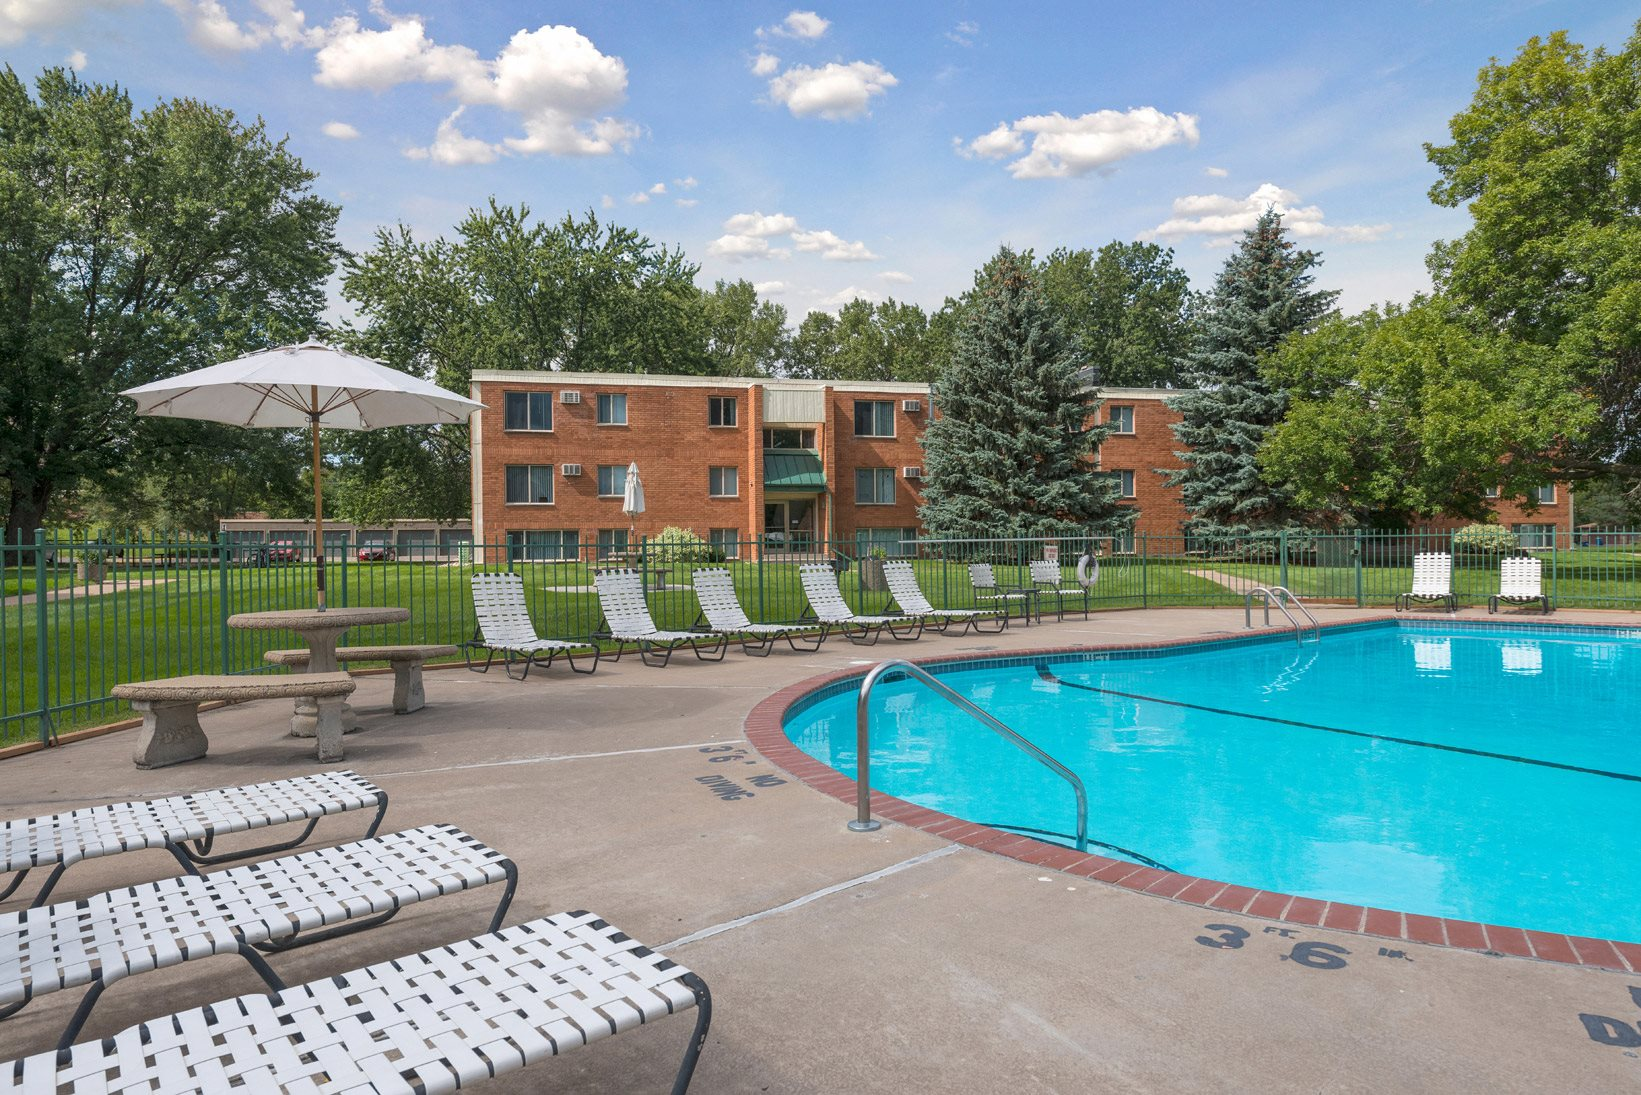 Regency Park Apartments in North St. Paul, MN Outdoor Pool